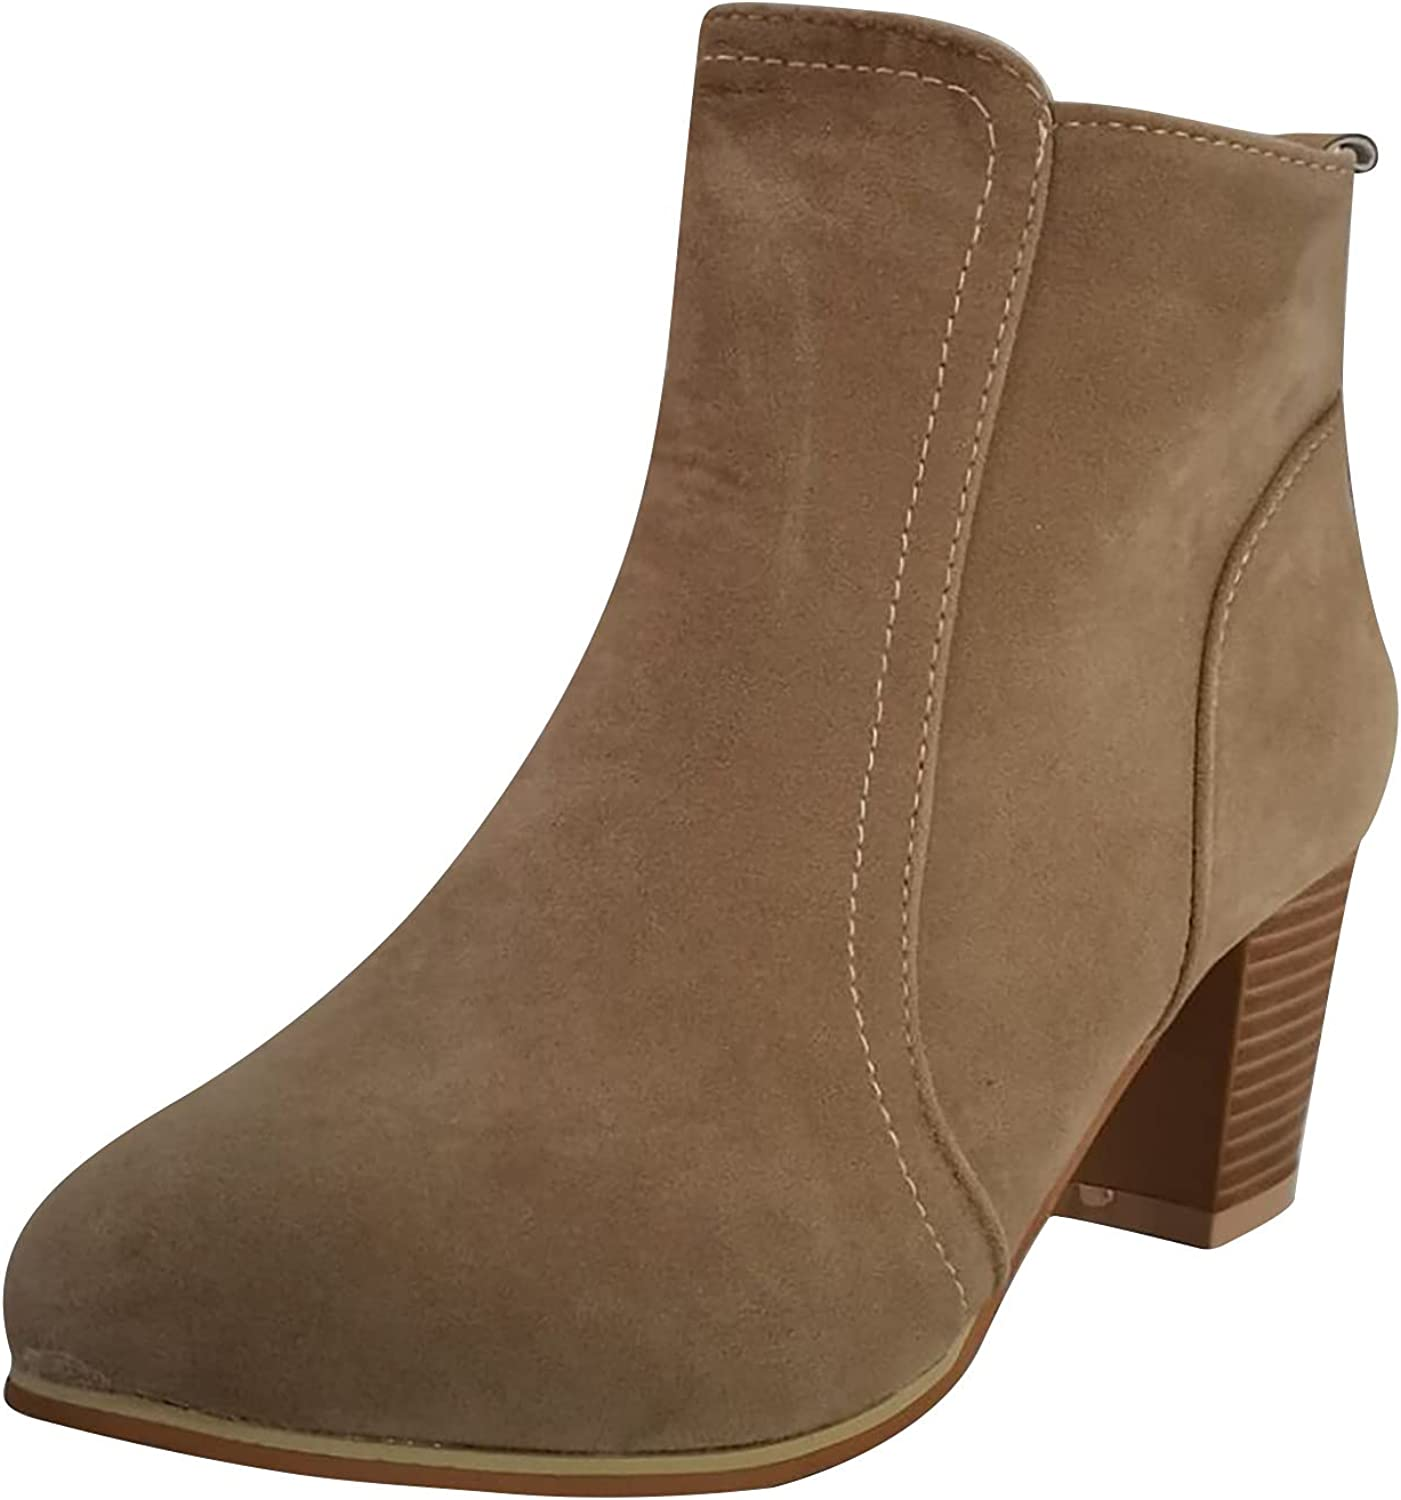 Women's Chelsea Boots Chunky Block Stacked Mid Purchase New Shipping Free Heel Ankle